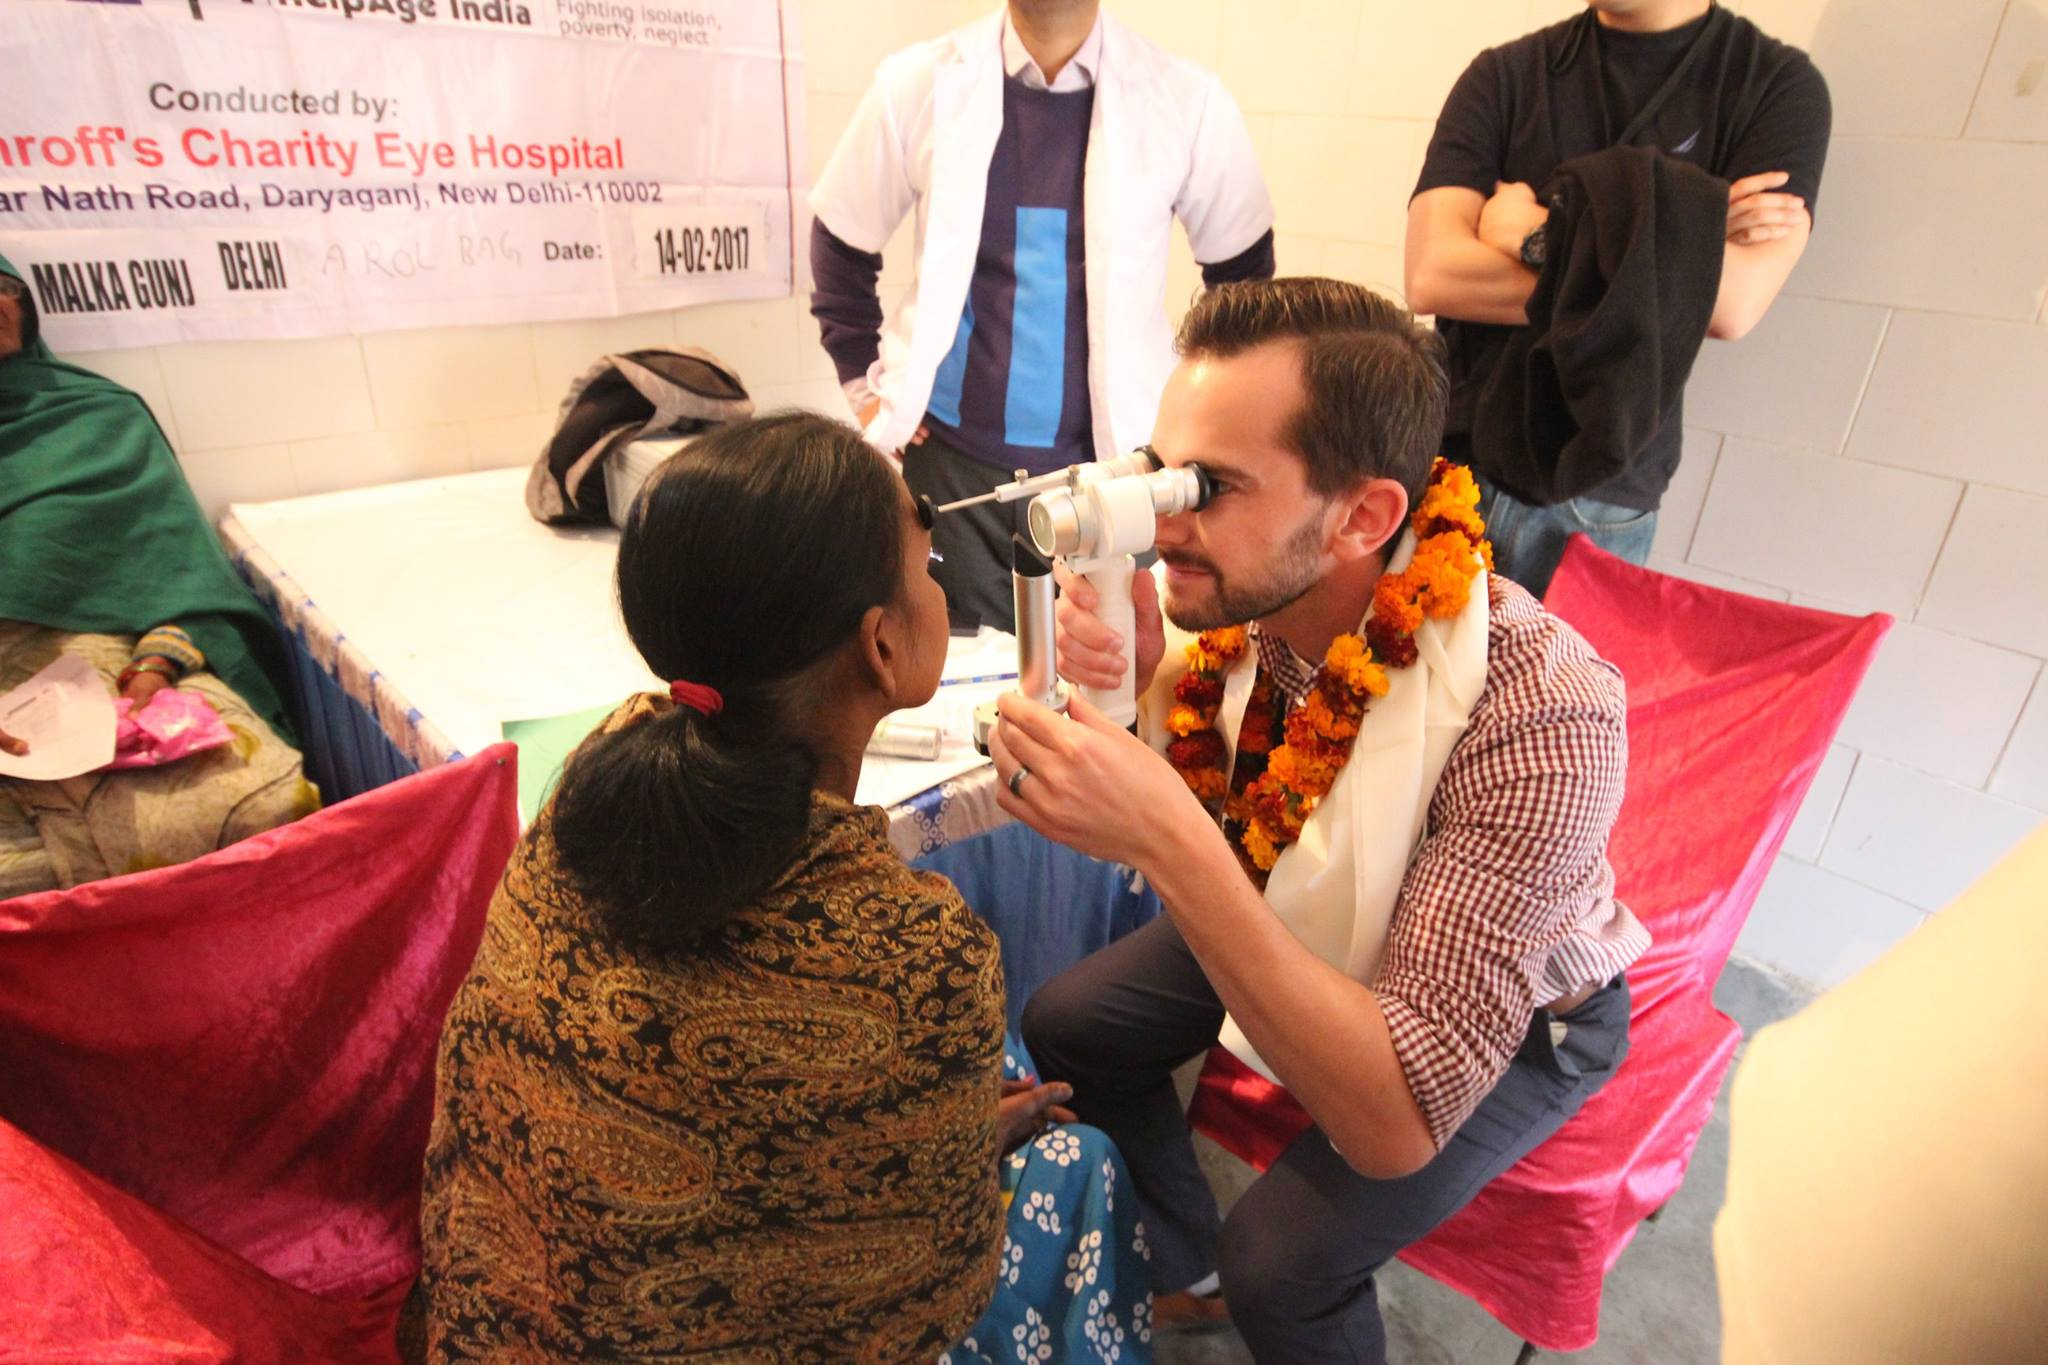 Resident examines patients at Shroff's Charity Eye Hospital //